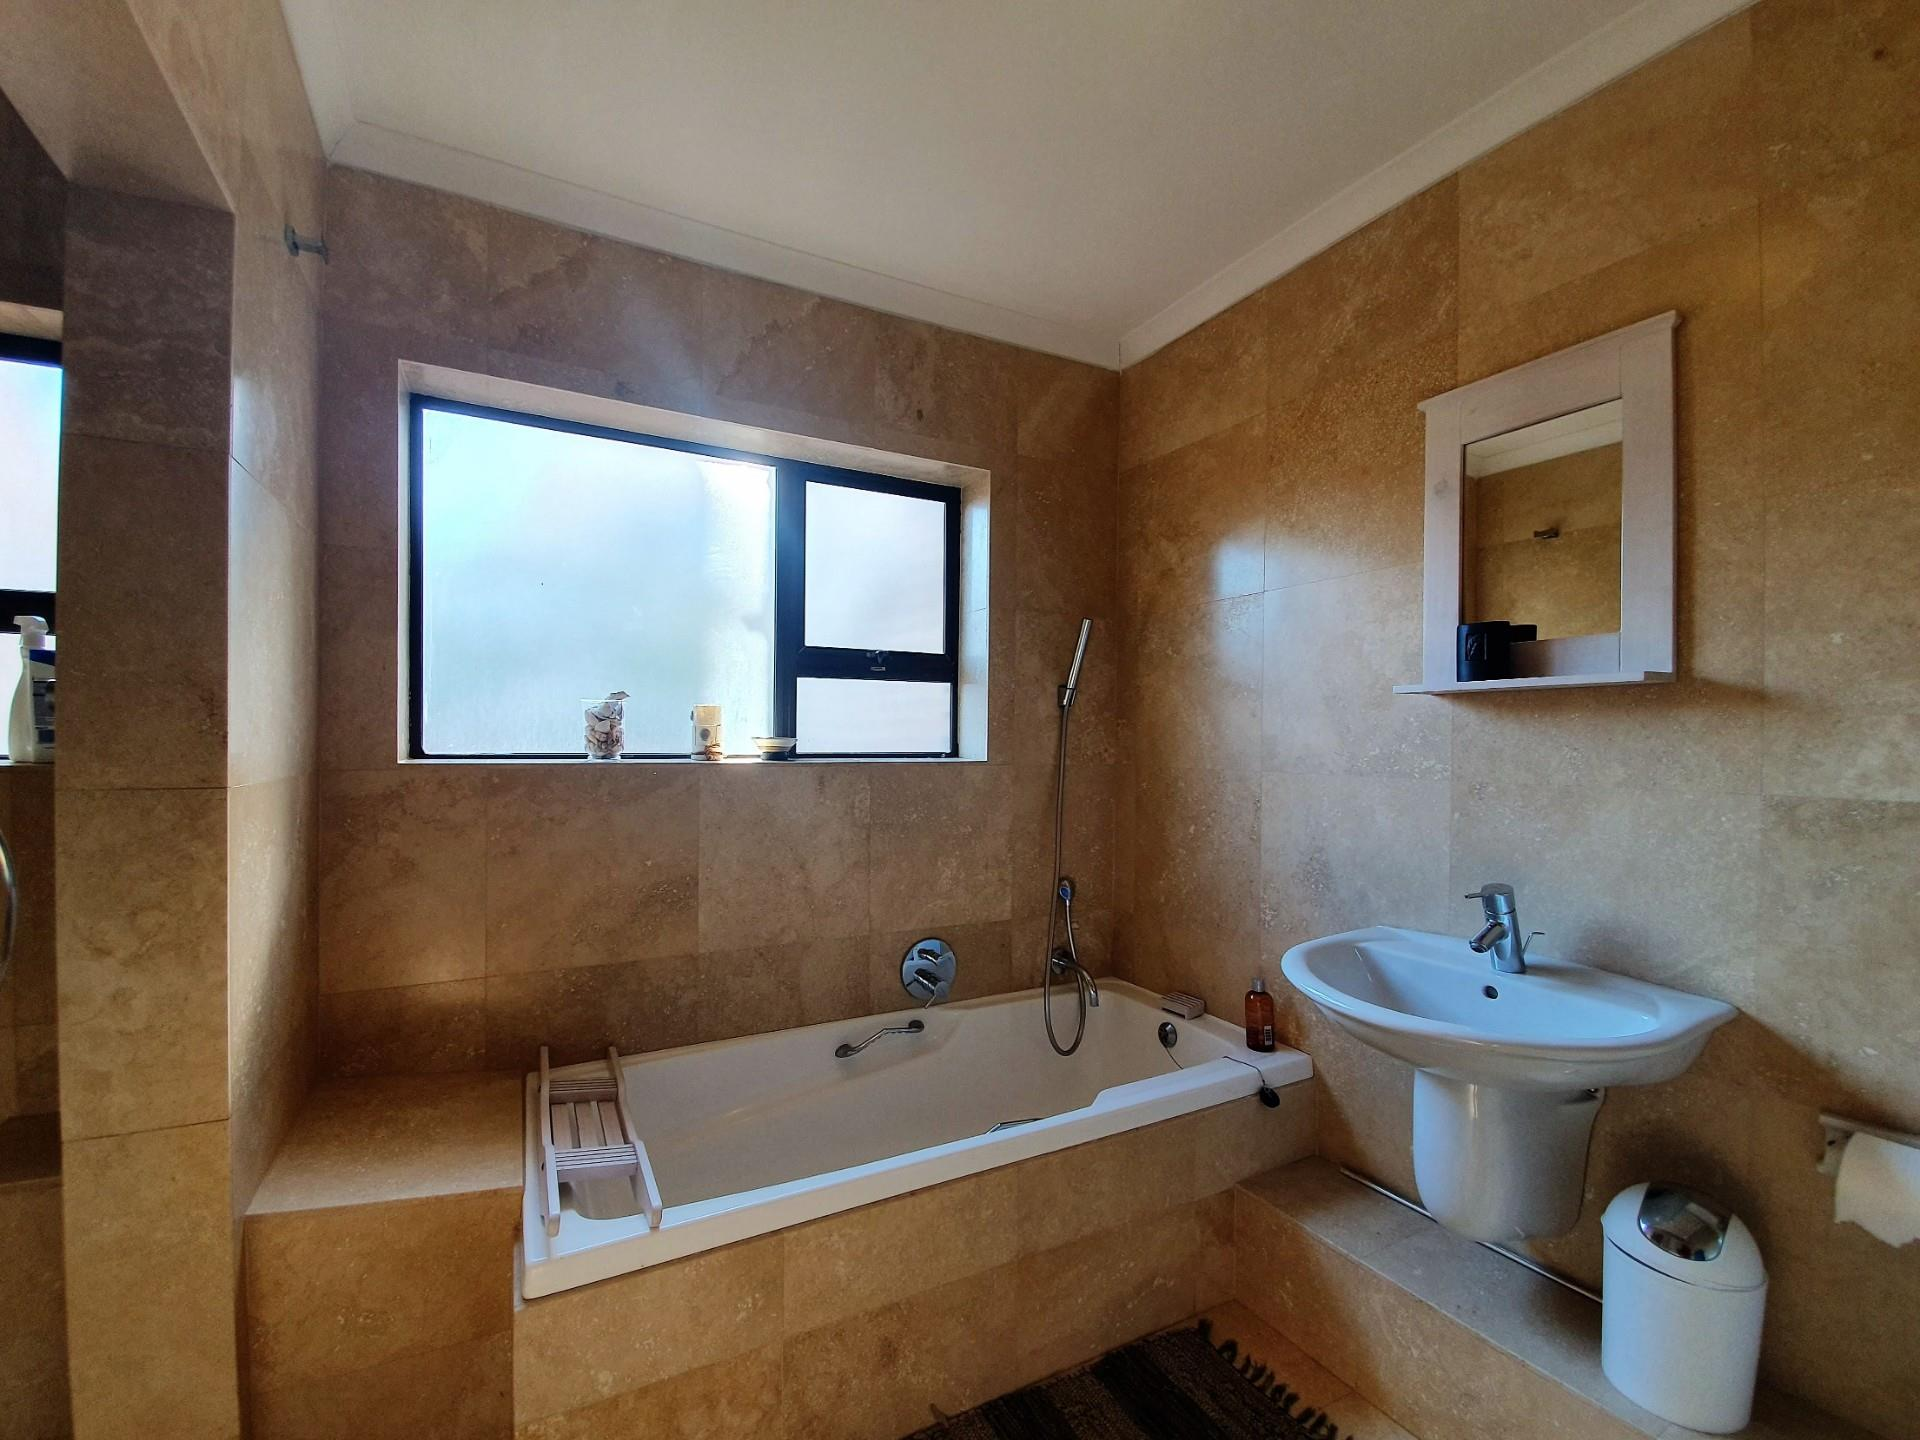 4 Bedroom Townhouse For Sale in Brenton On Sea